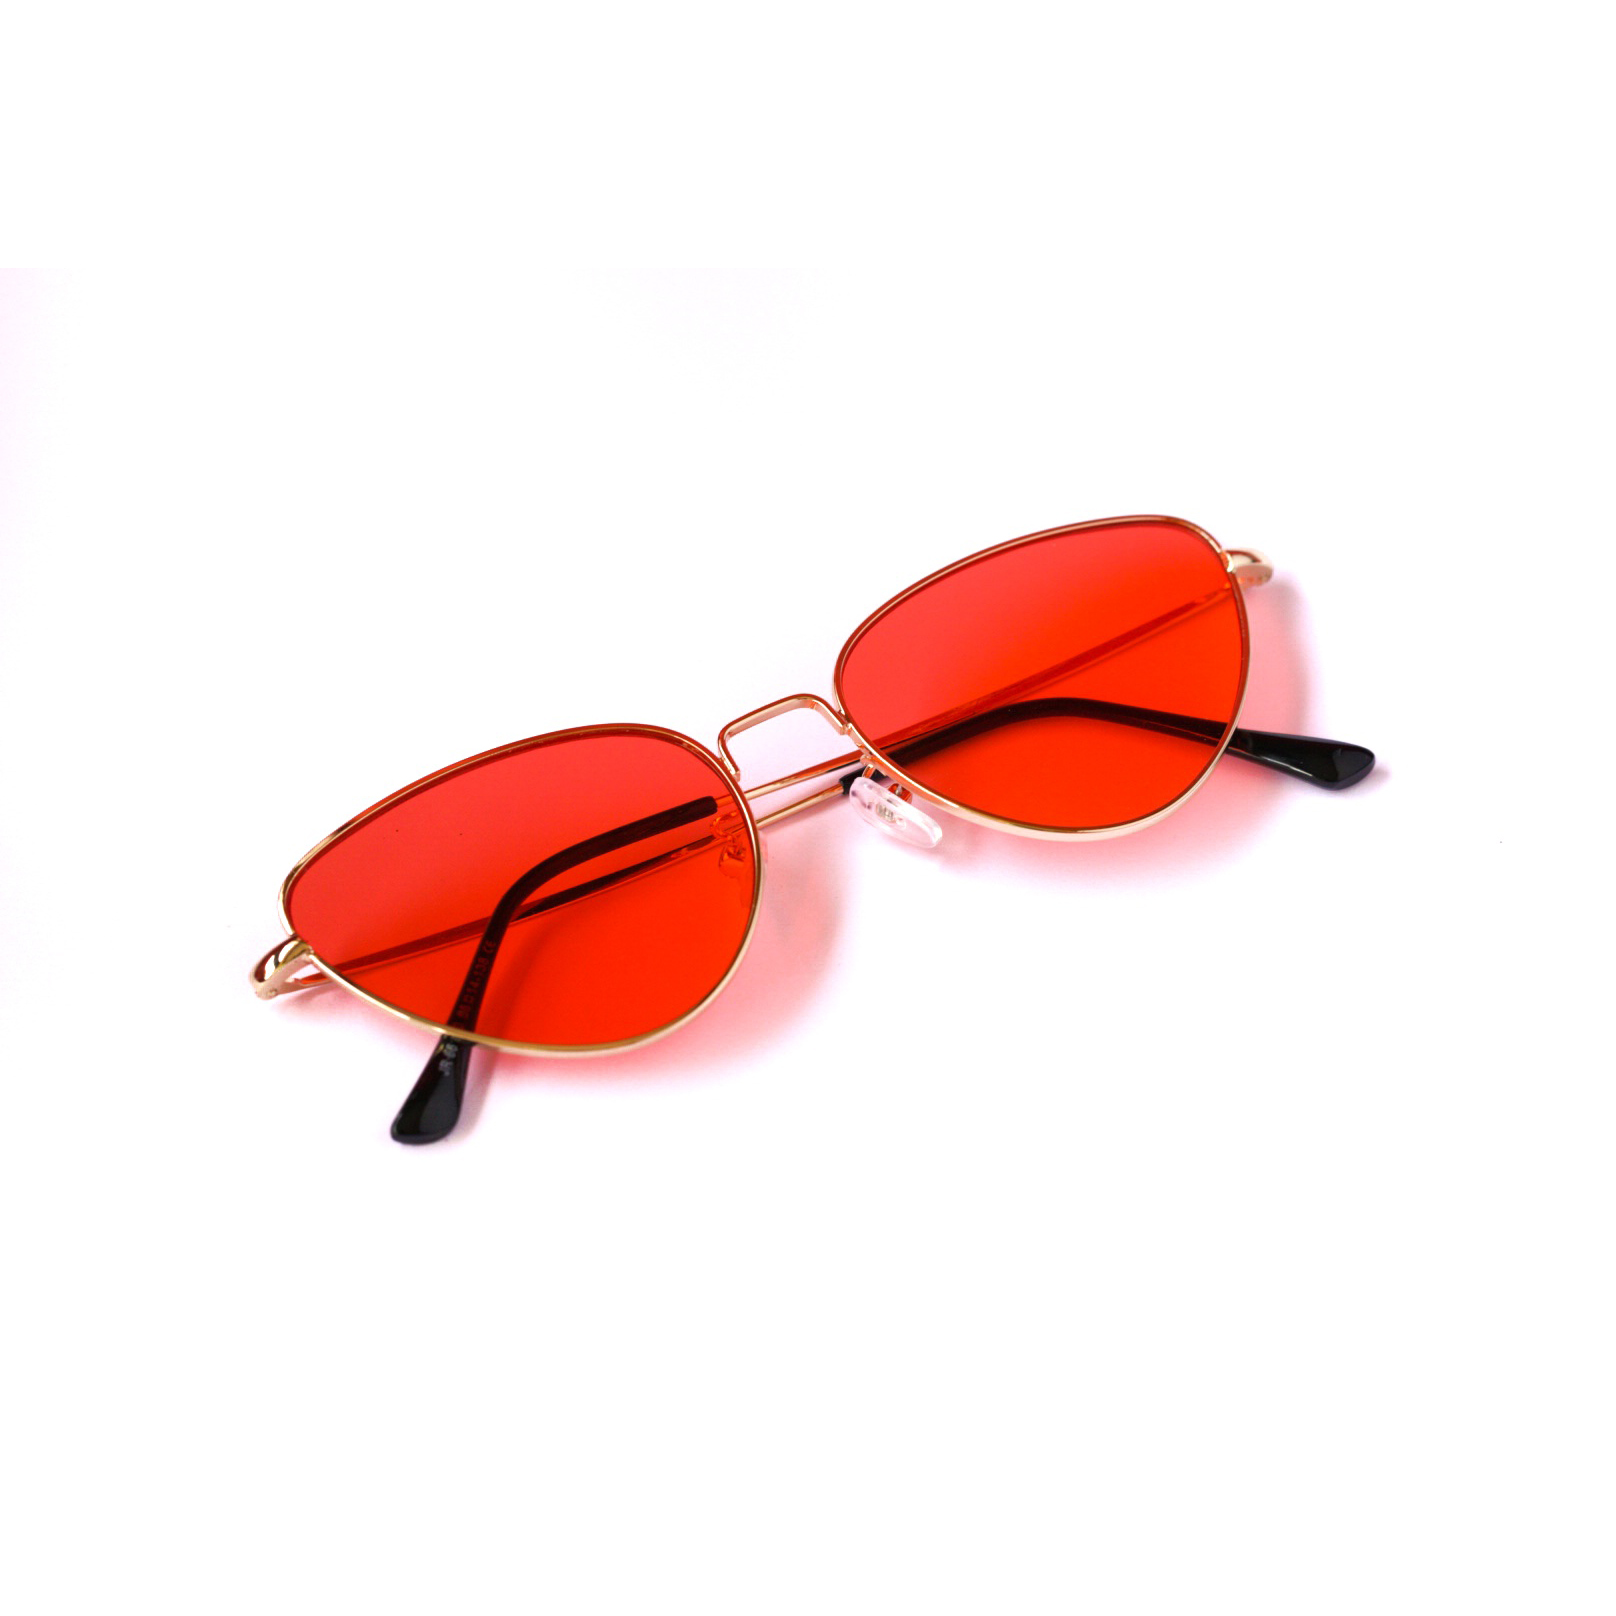 Tinted Cat Eye Sunnies-Red (1).jpeg